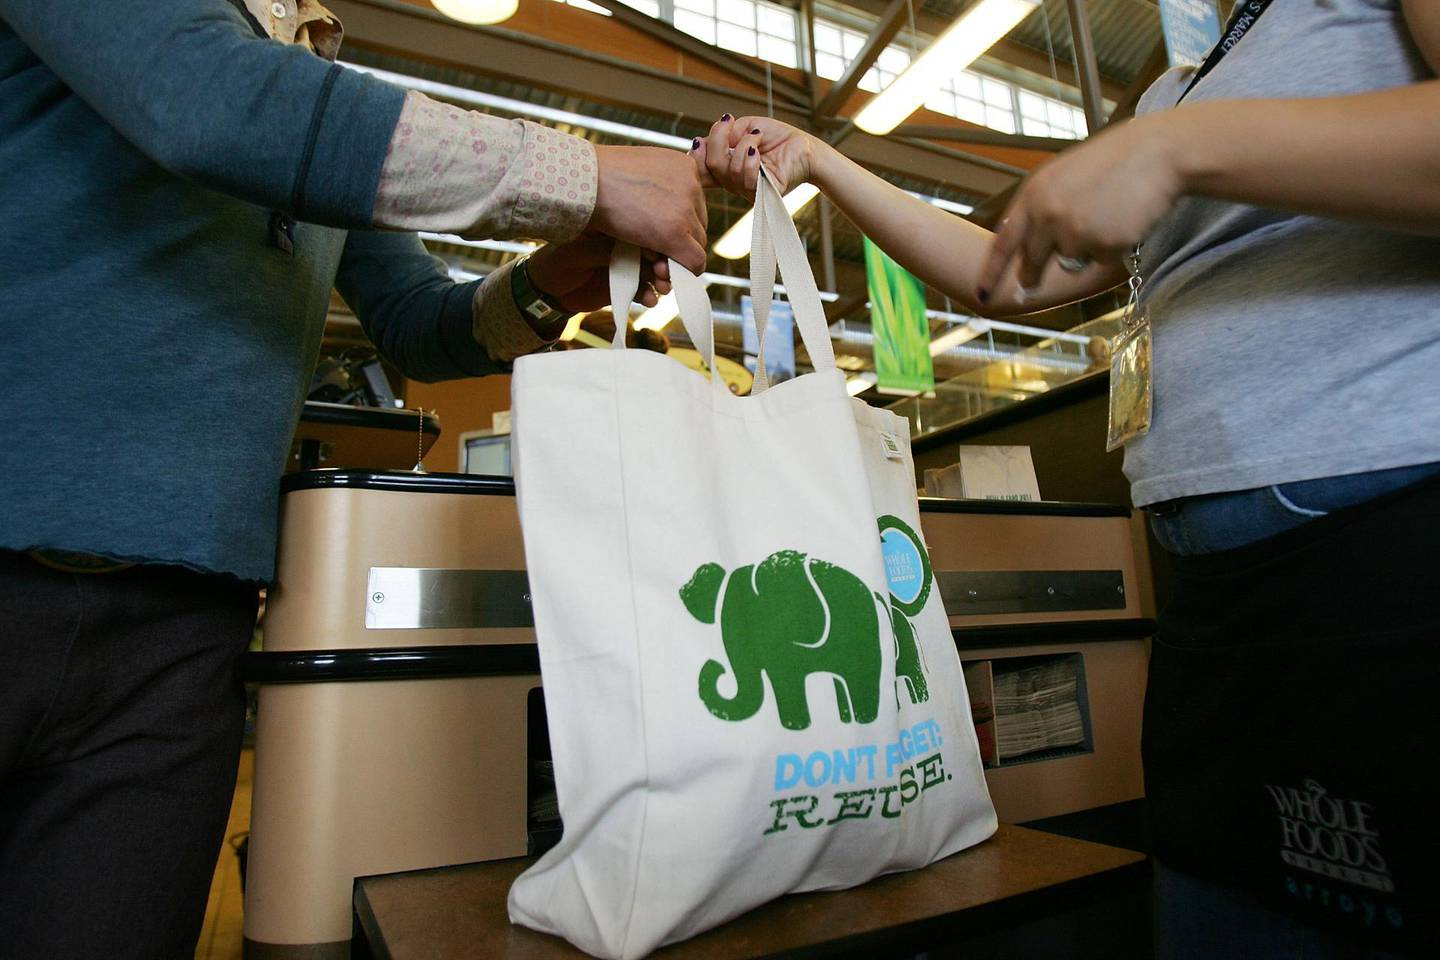 PASADENA, CA - APRIL 22:  Employees hand out free reusable grocery bags at a Whole Foods Market natural and organic foods stores which is ending the use of disposable plastic grocery bags in its 270 stores in the US Canada and UK on Earth Day, April 22, 2008 in Pasadena California. The use of reusable bags has increased since a statewide plastic bag recycling law was enacted in July 2007 requiring grocers to provide in-store plastic bag recycling and to sell reusable shopping bags. Some communities have banned disposable single-use plastic shopping bags because they don't break down in landfills, and clog waterways, endangering wildlife, and are a major source of litter.   (Photo by David McNew/Getty Images)